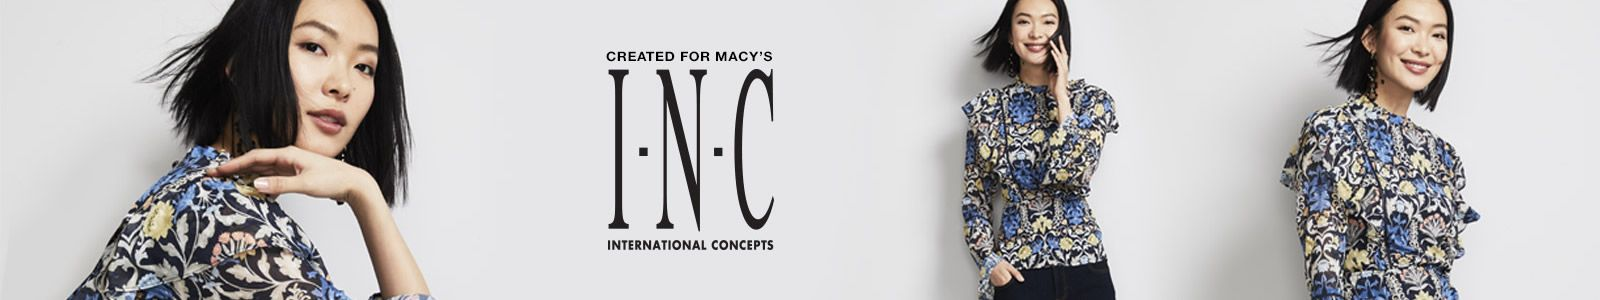 Created For Macy's, INC, International Concepts